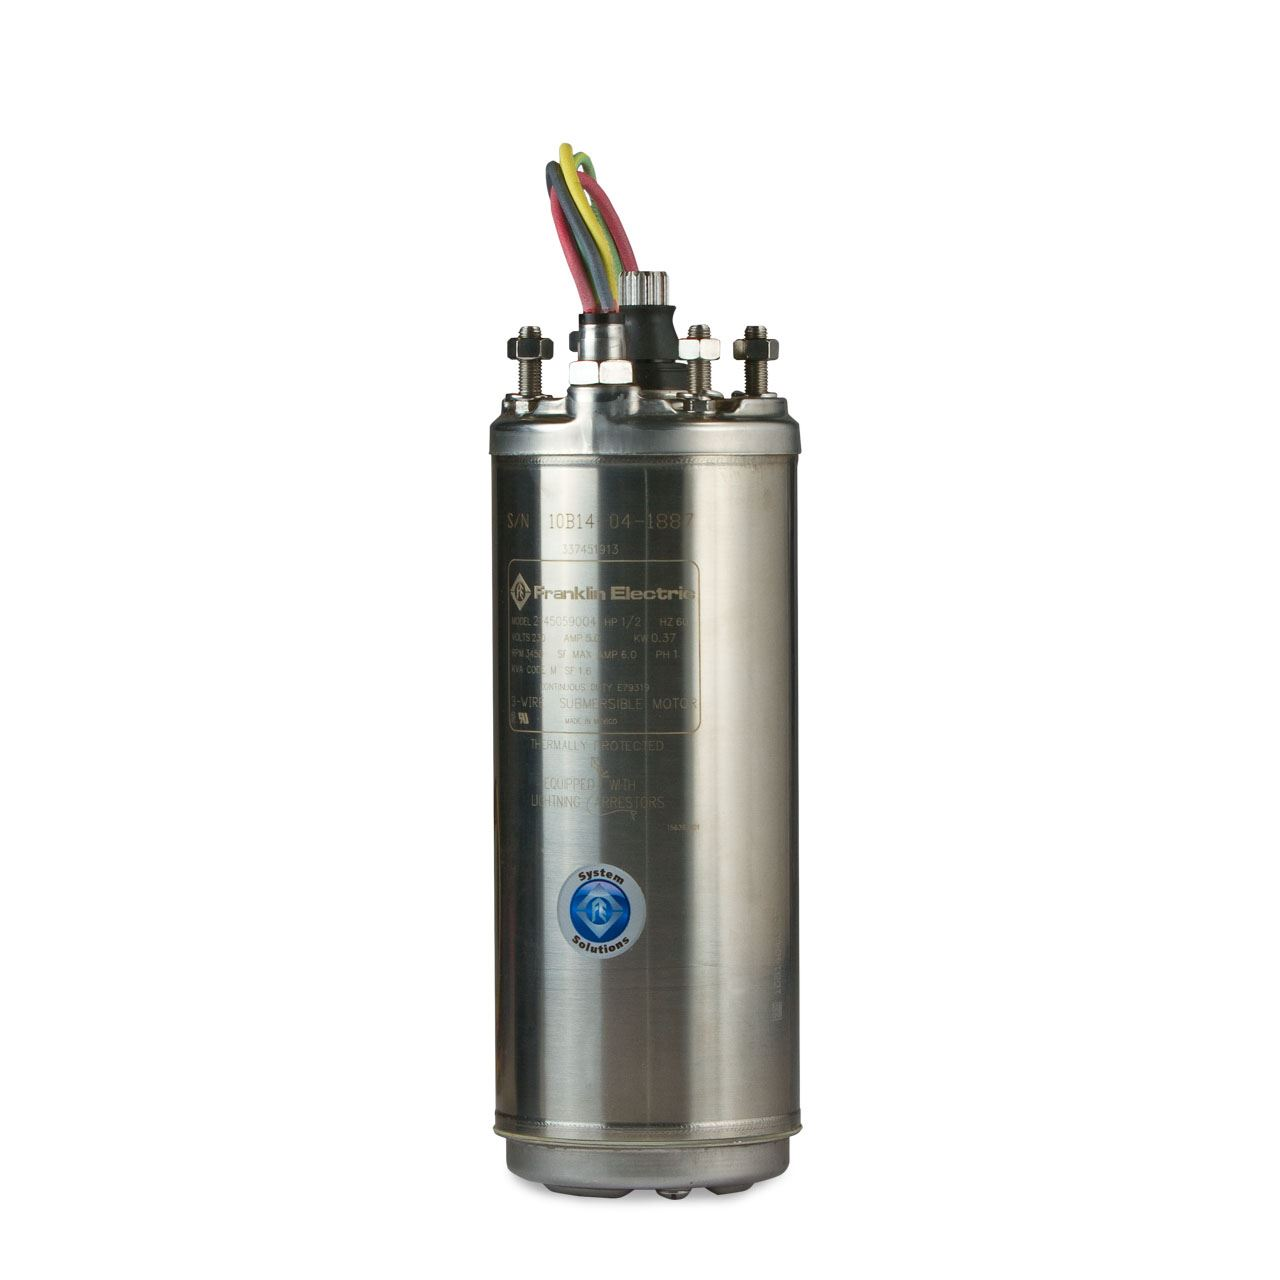 franklinsubmotorsmall_w?bw=750&w=750&bh=750&h=750 franklin electric franklin electric 2145049004 super stainless  at bayanpartner.co